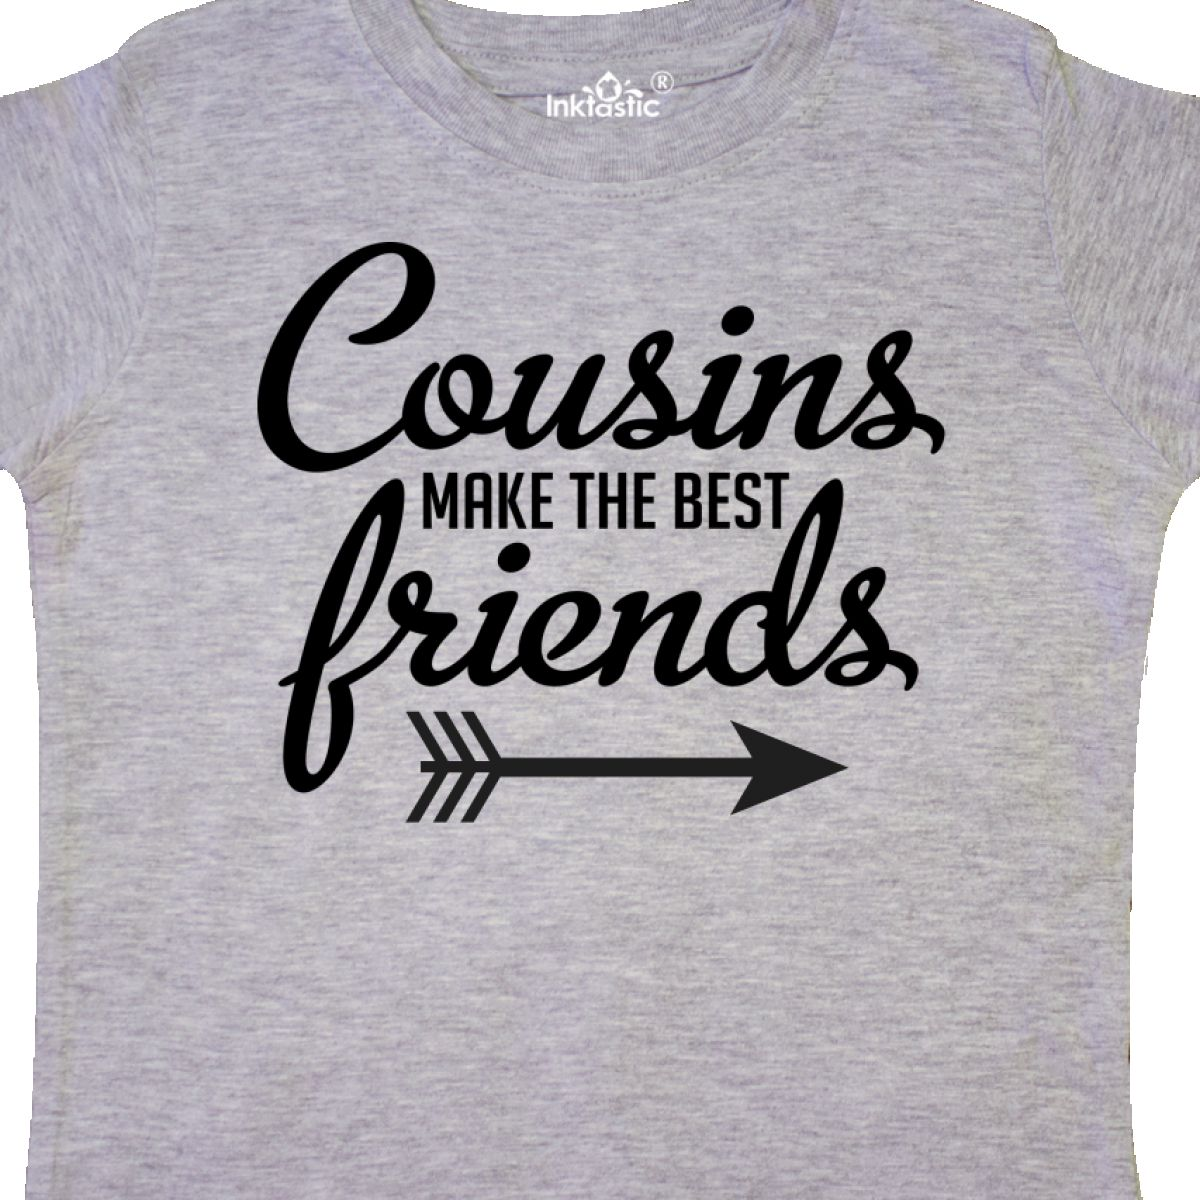 Unisex Clothing Tops & T-shirts Inktastic Cousins Make The Best Friends Youth T-shirt Cousin Crew Childs Family